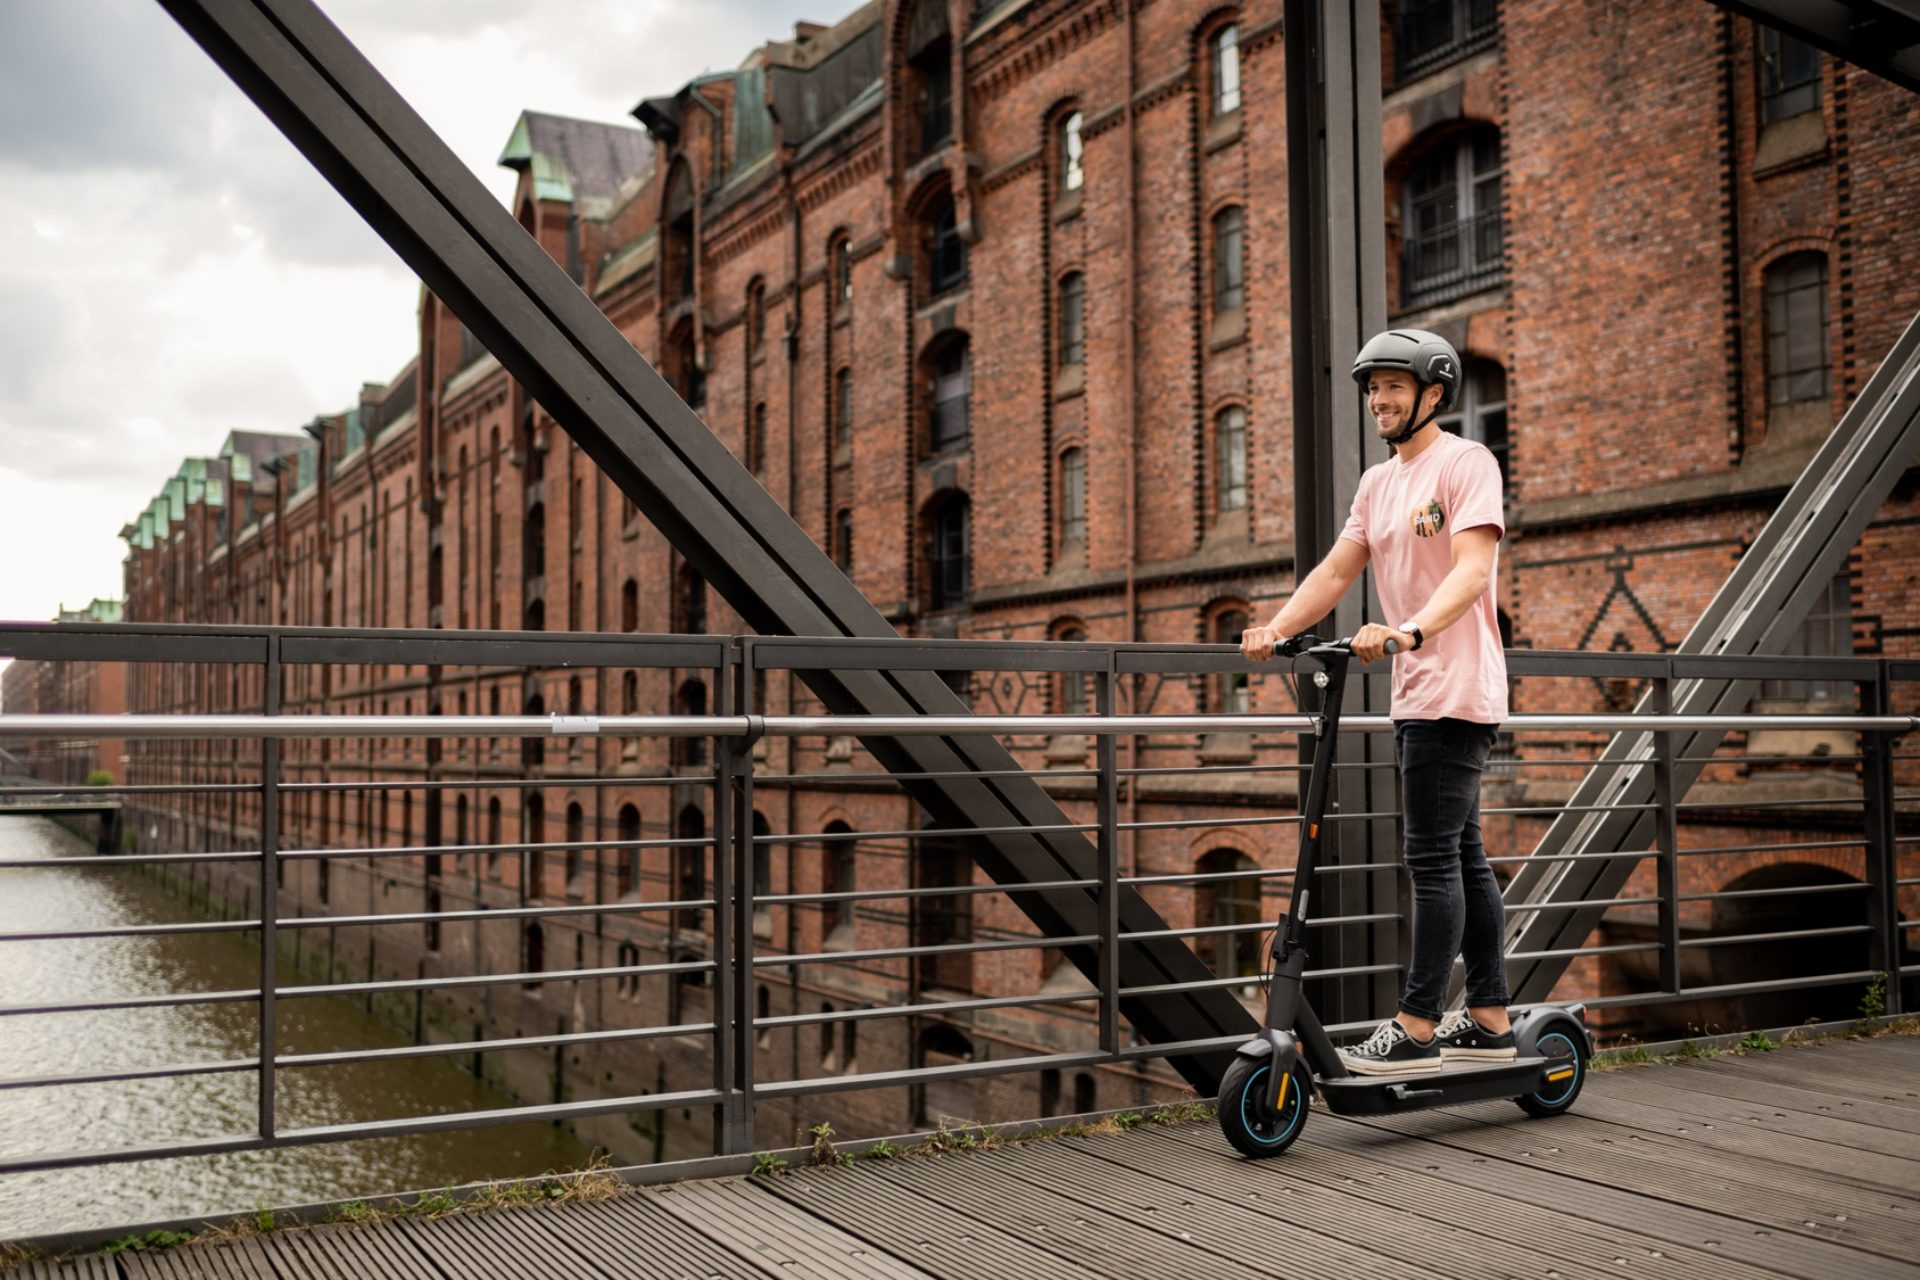 [hero] New Generation: Ninebot MAX G30D II Powered by Segway!